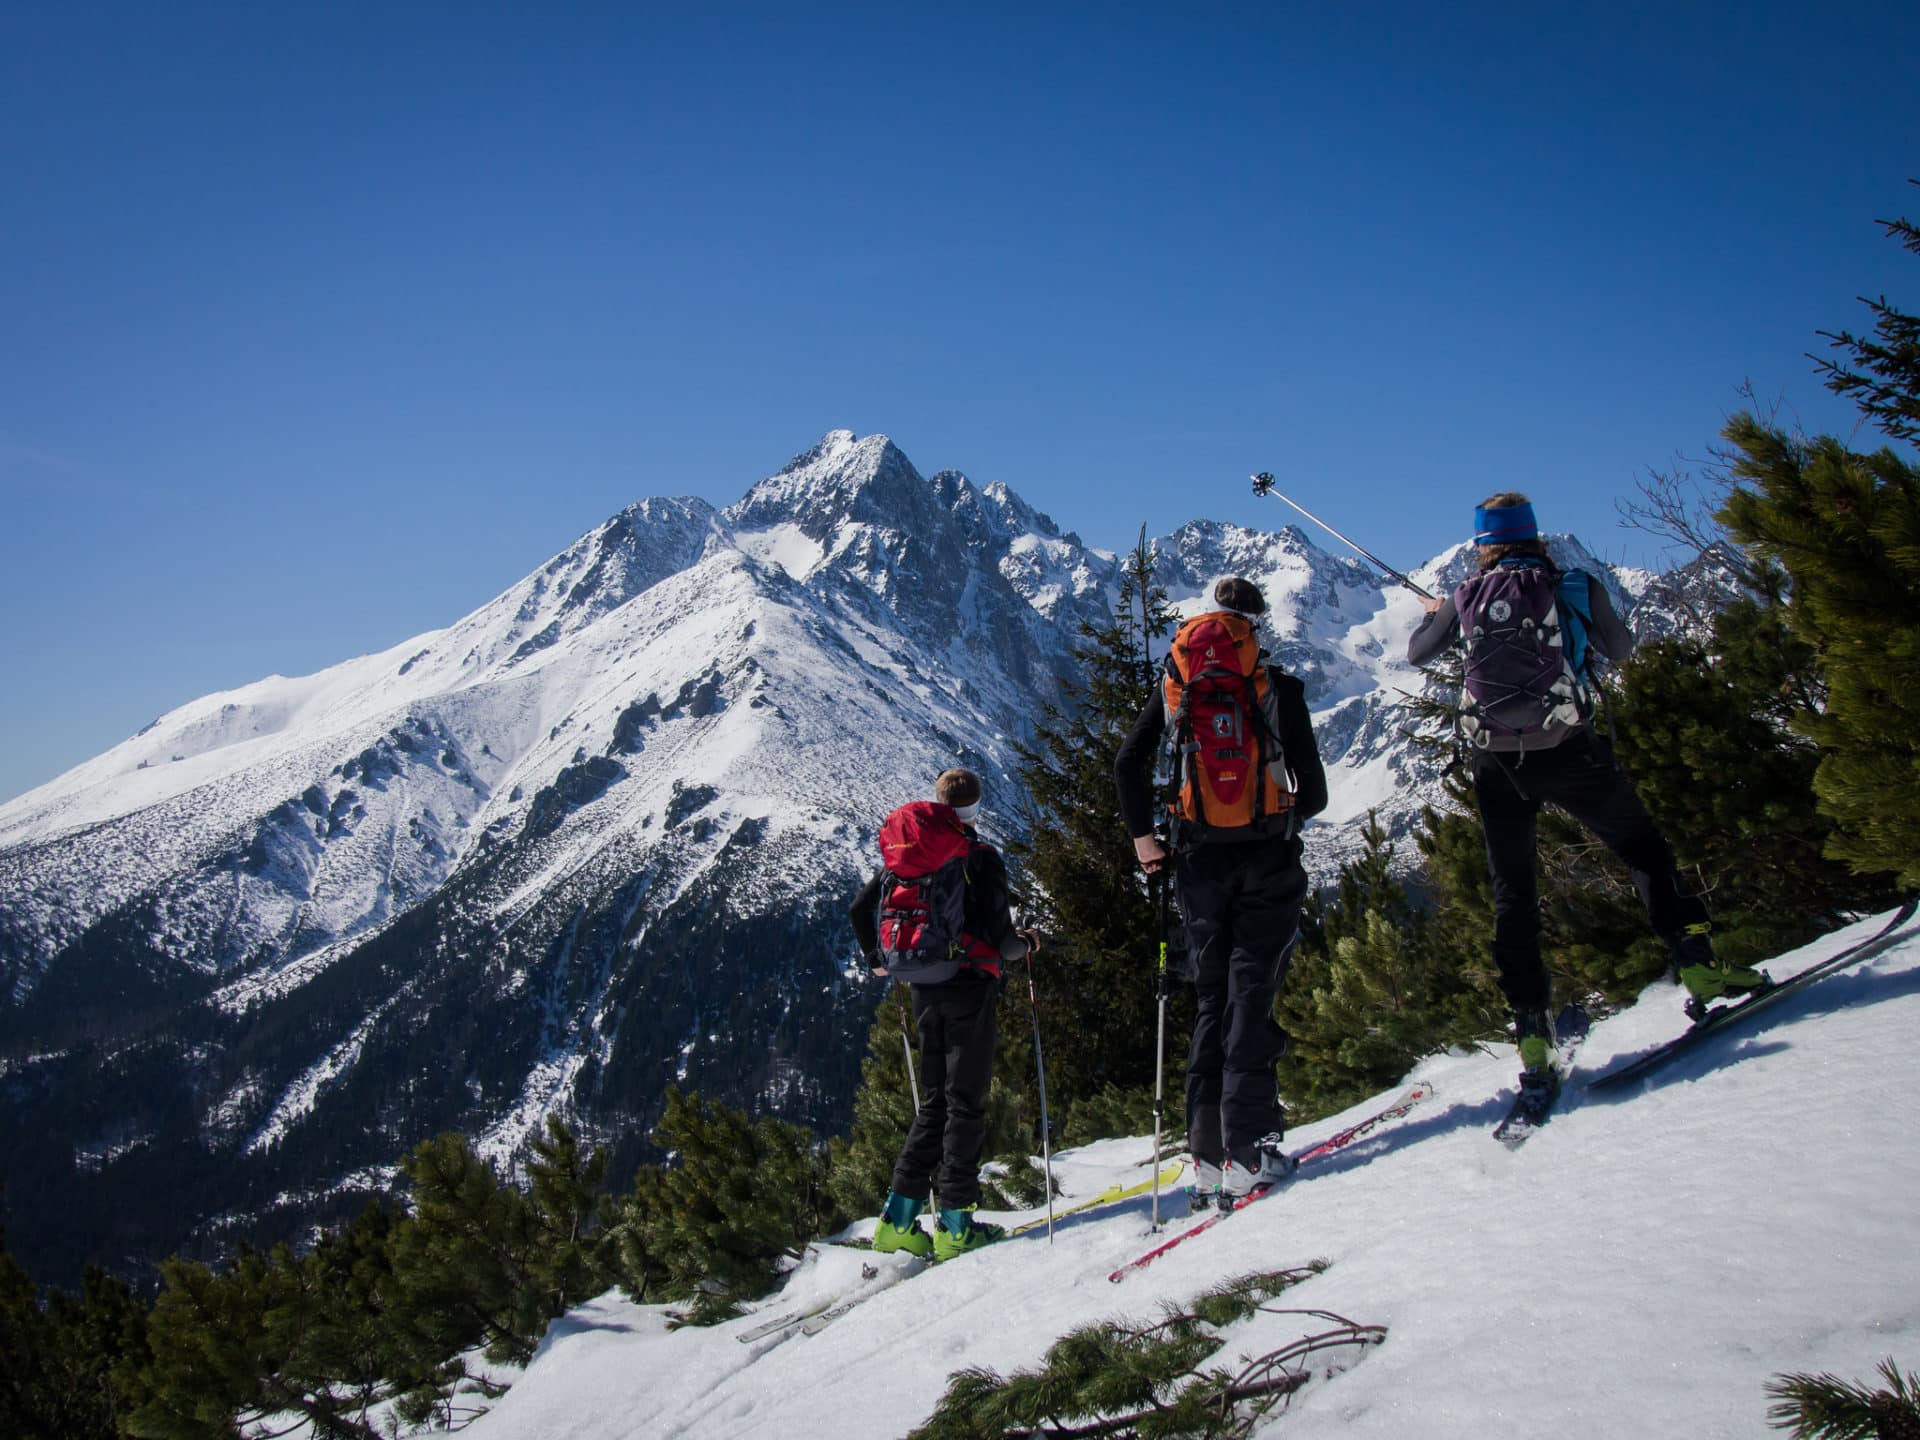 7-day backcountry ski tour in the High Tatras